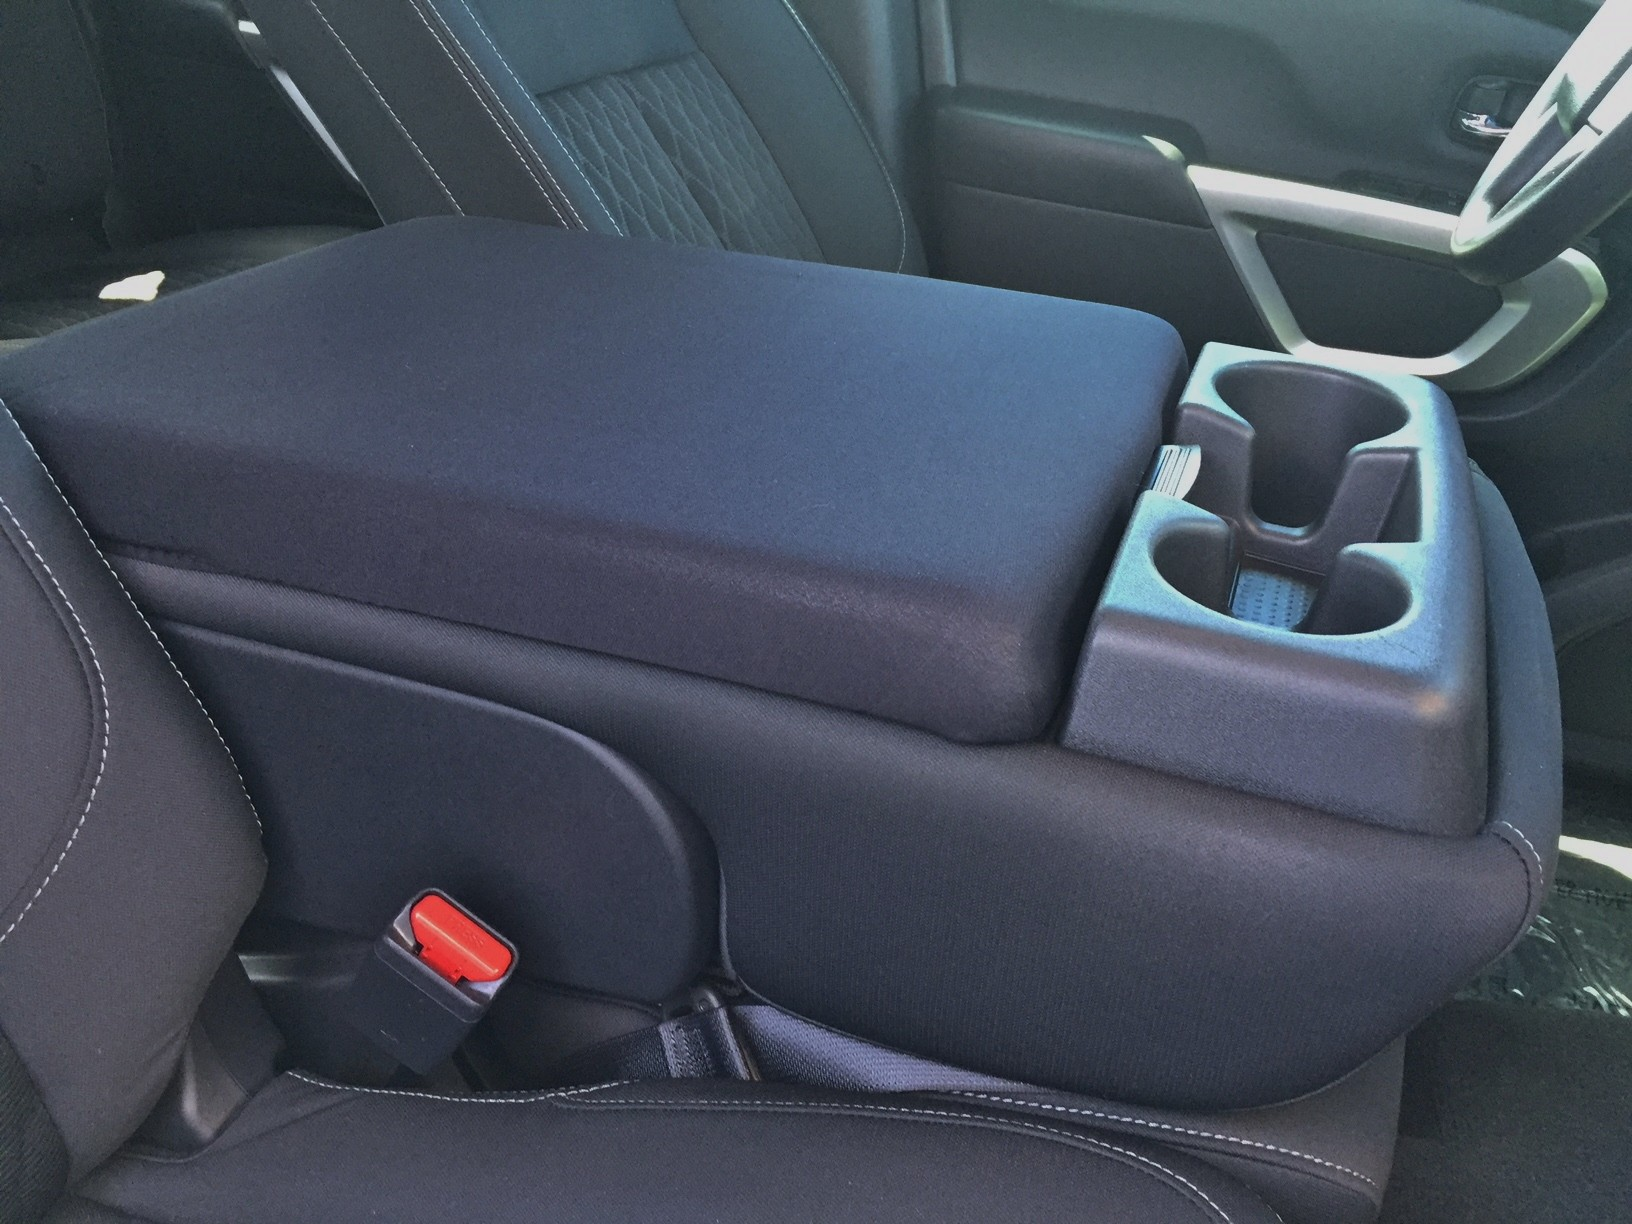 Nissan Titan 2013-2020 - (With Third Middle Front Seat)-Neoprene Console Cover